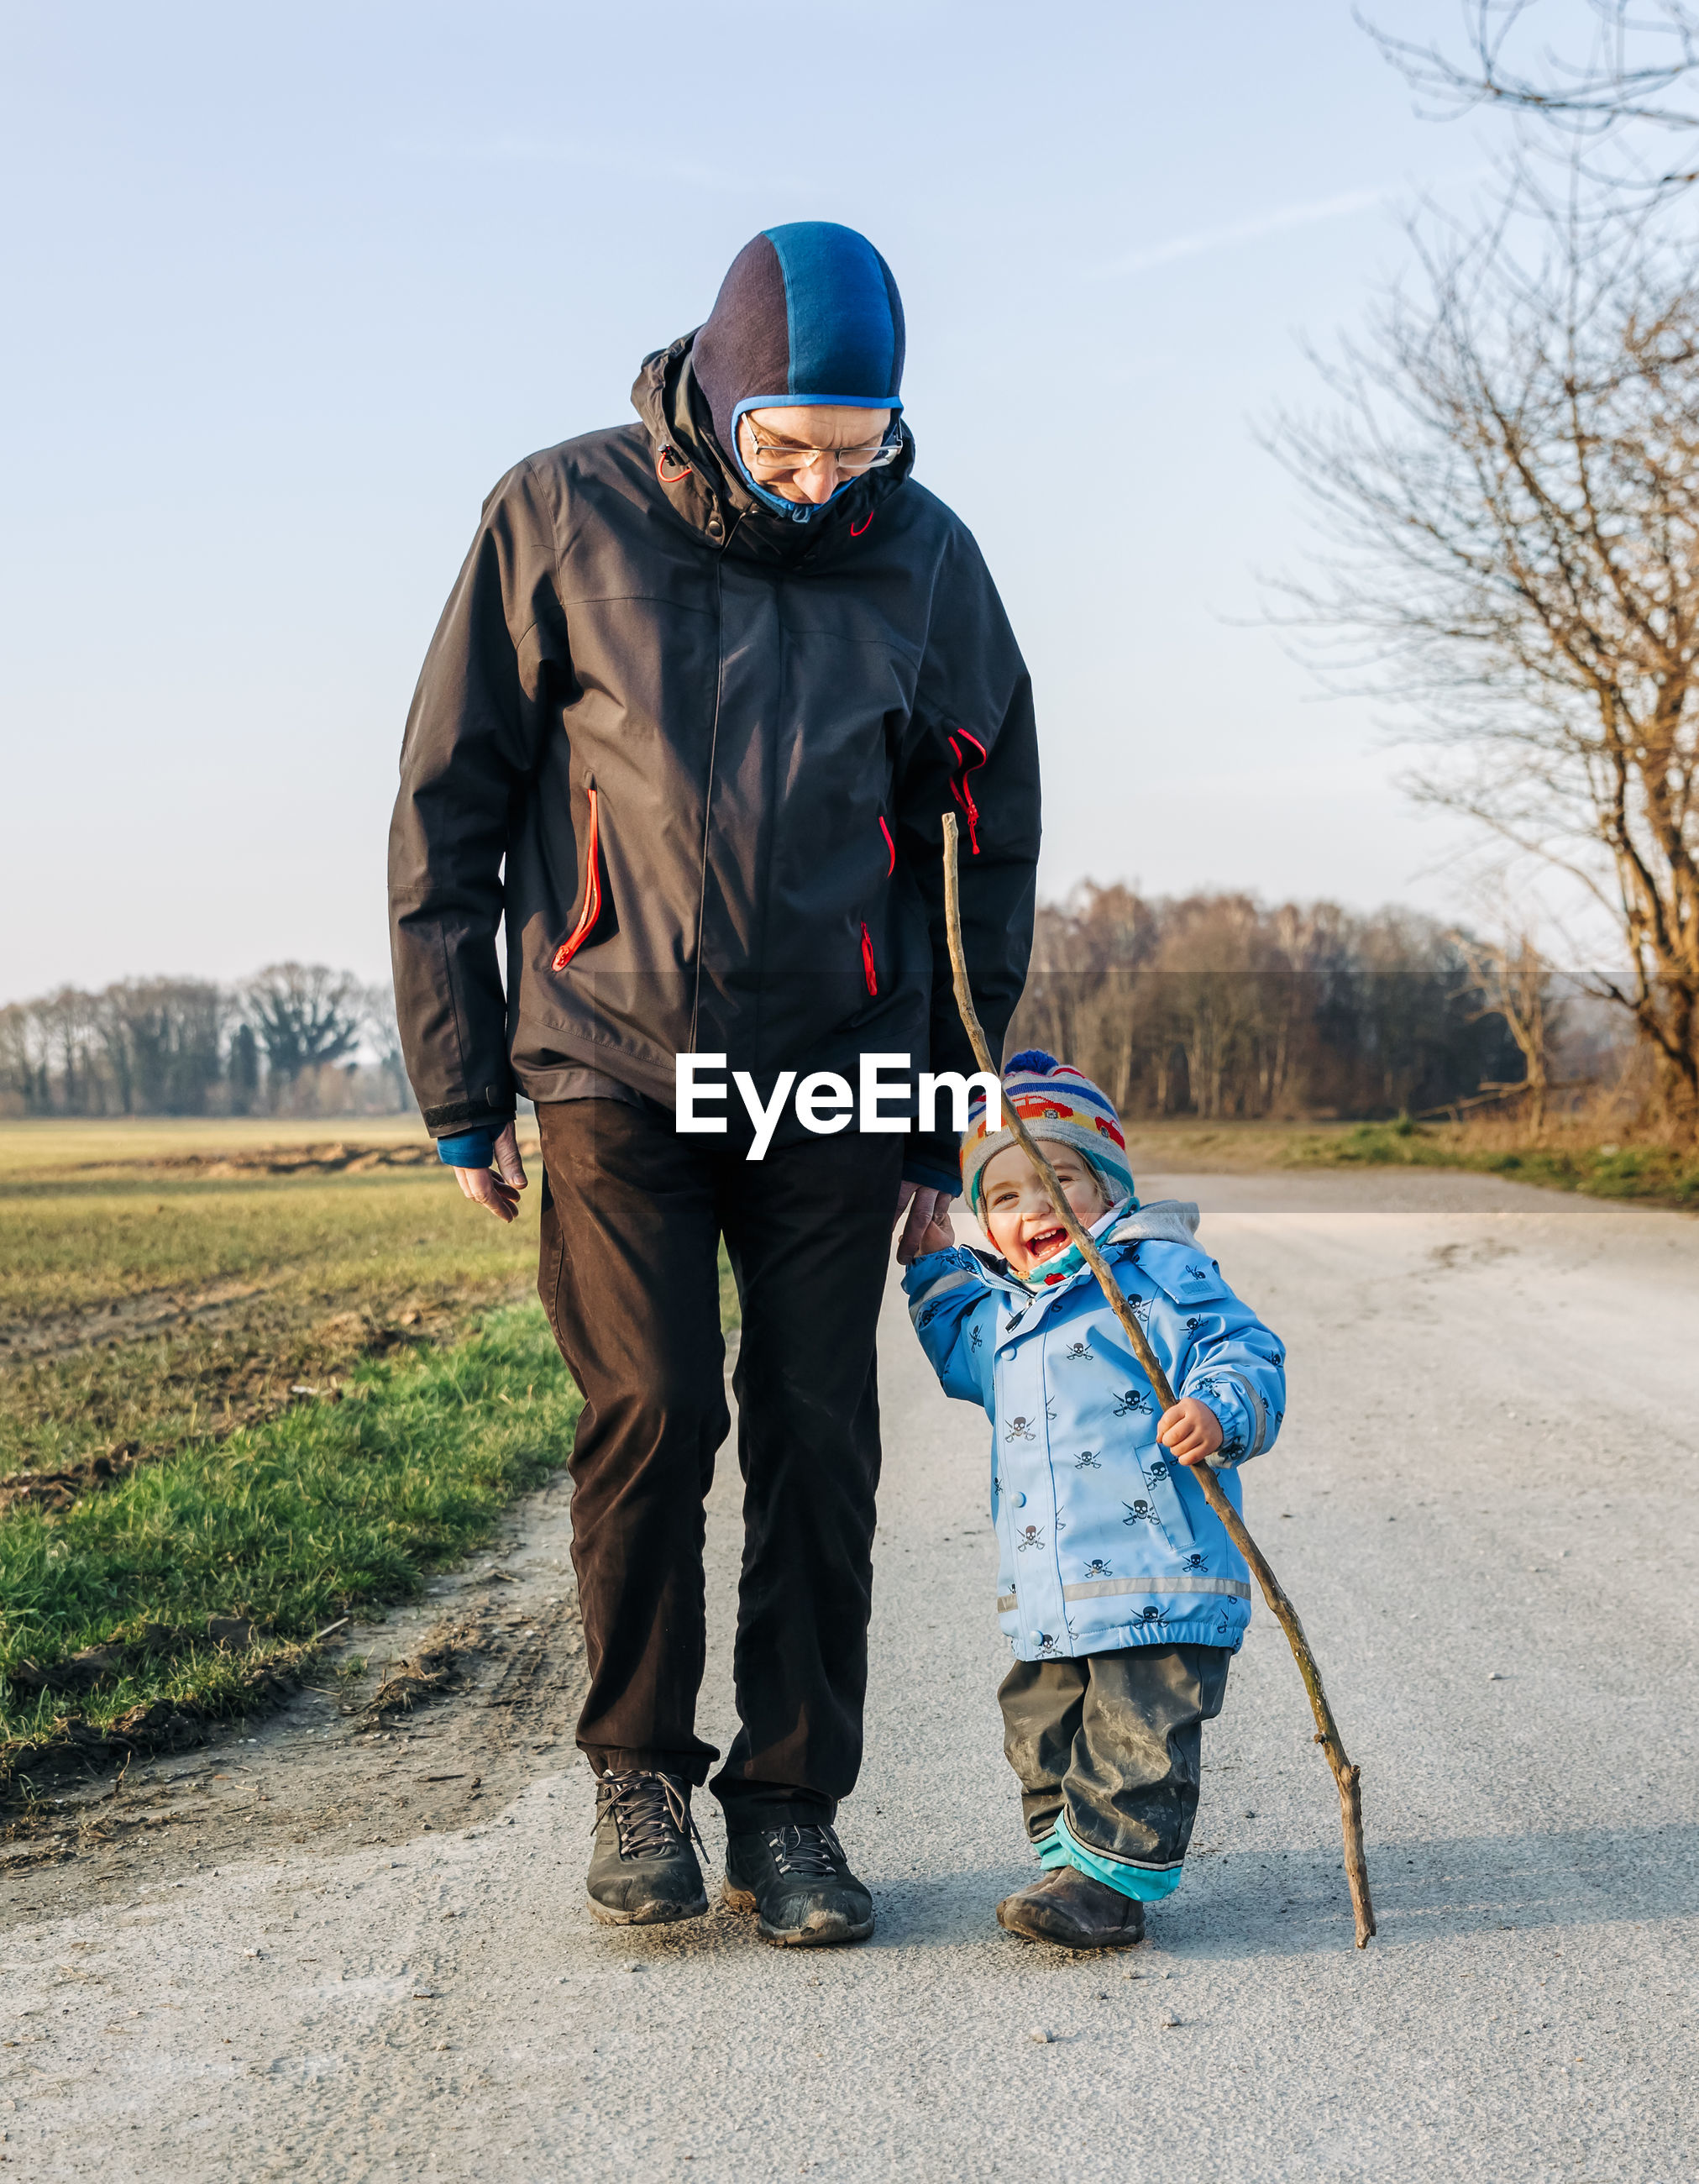 Grandfather and granddaughter walking on dirt road during winter